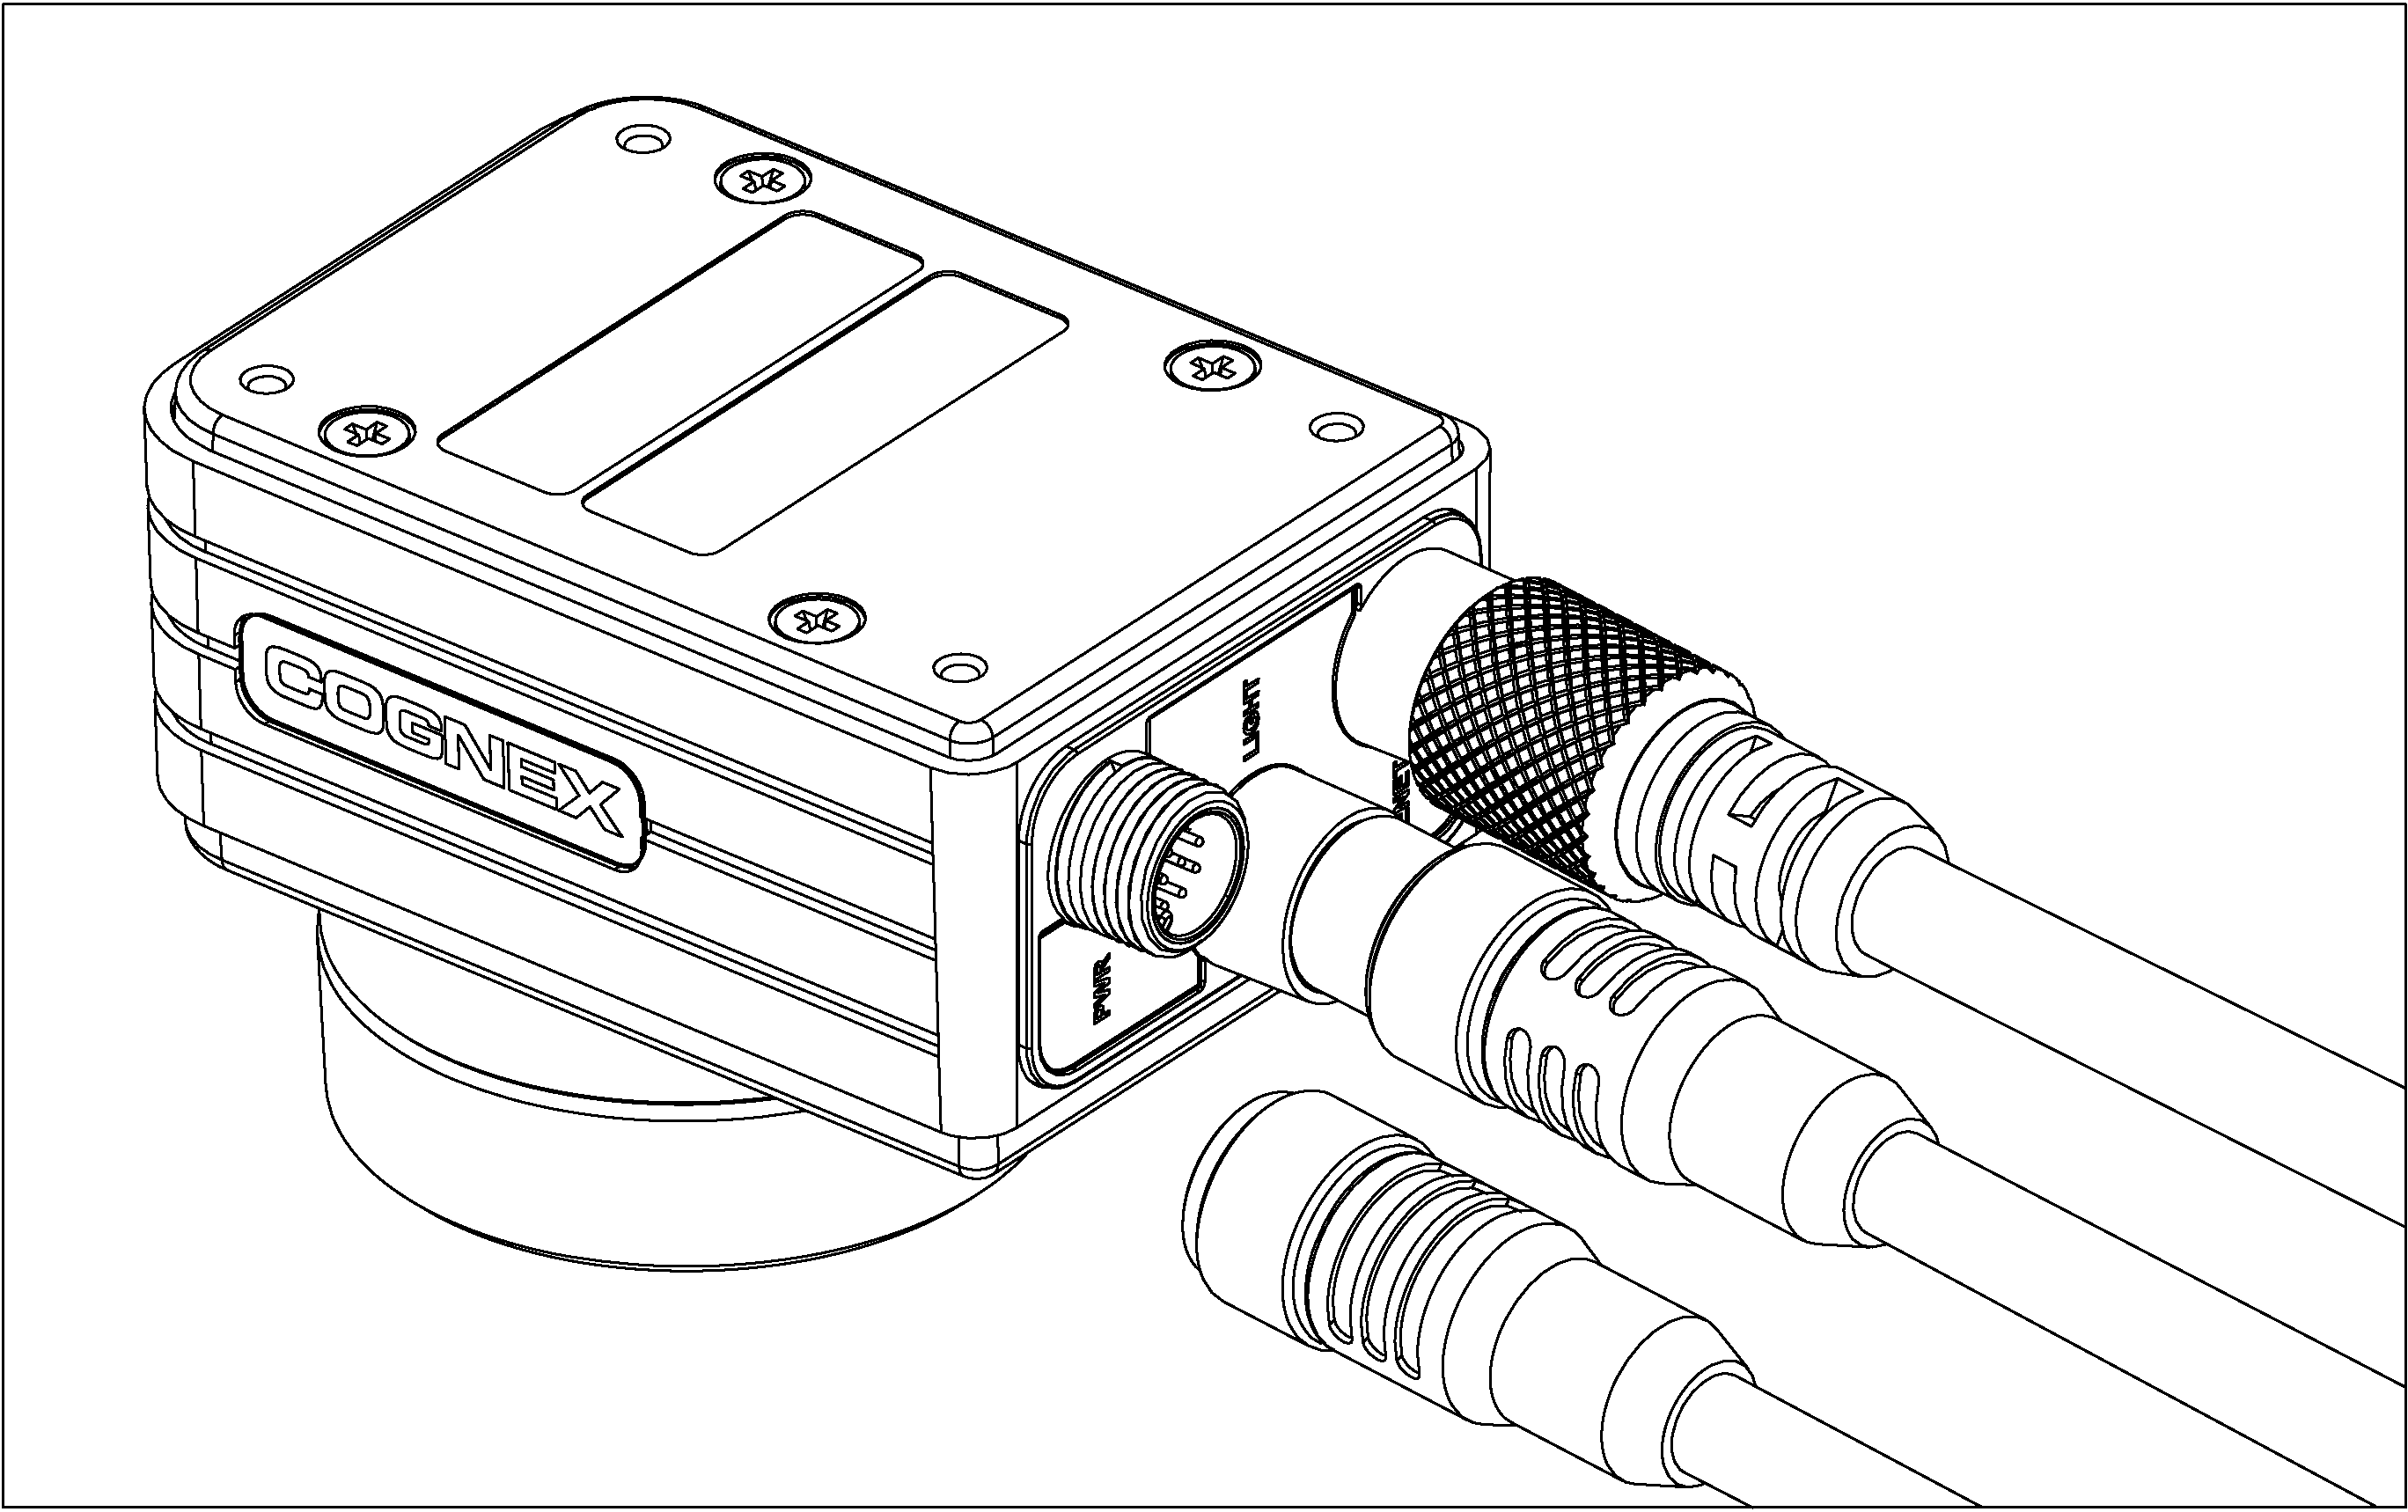 Connect the Power and I/O Breakout Cable